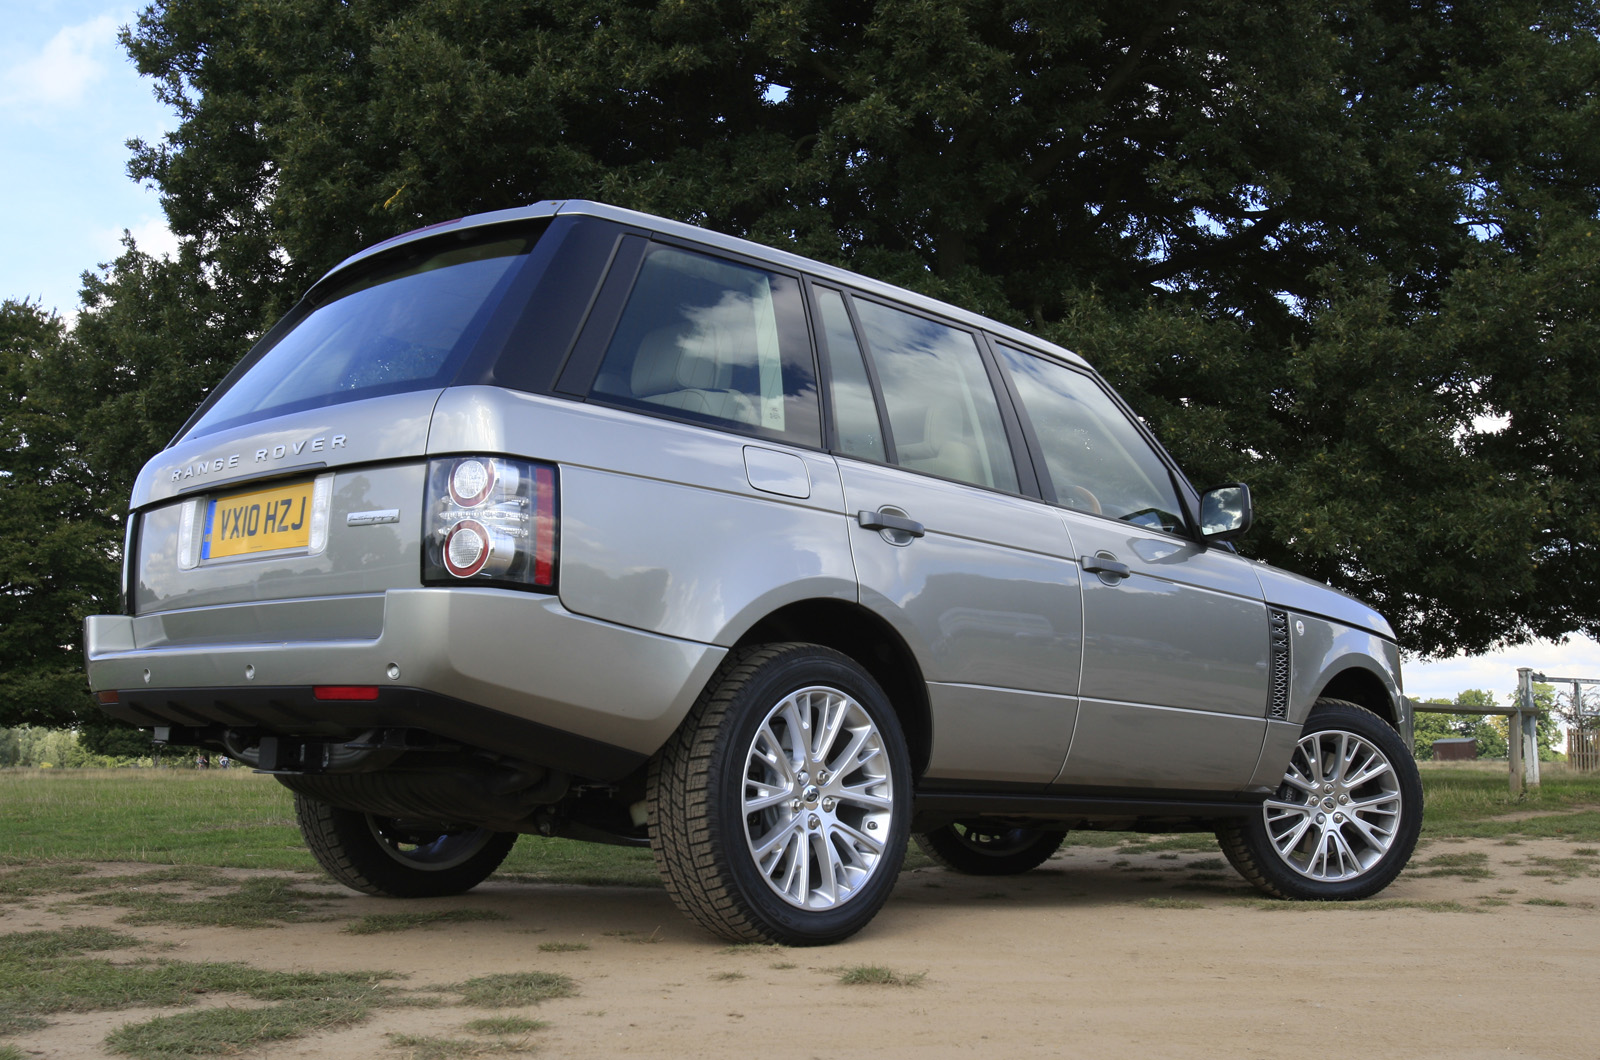 range rover 4 4 tdv8 first drive. Black Bedroom Furniture Sets. Home Design Ideas